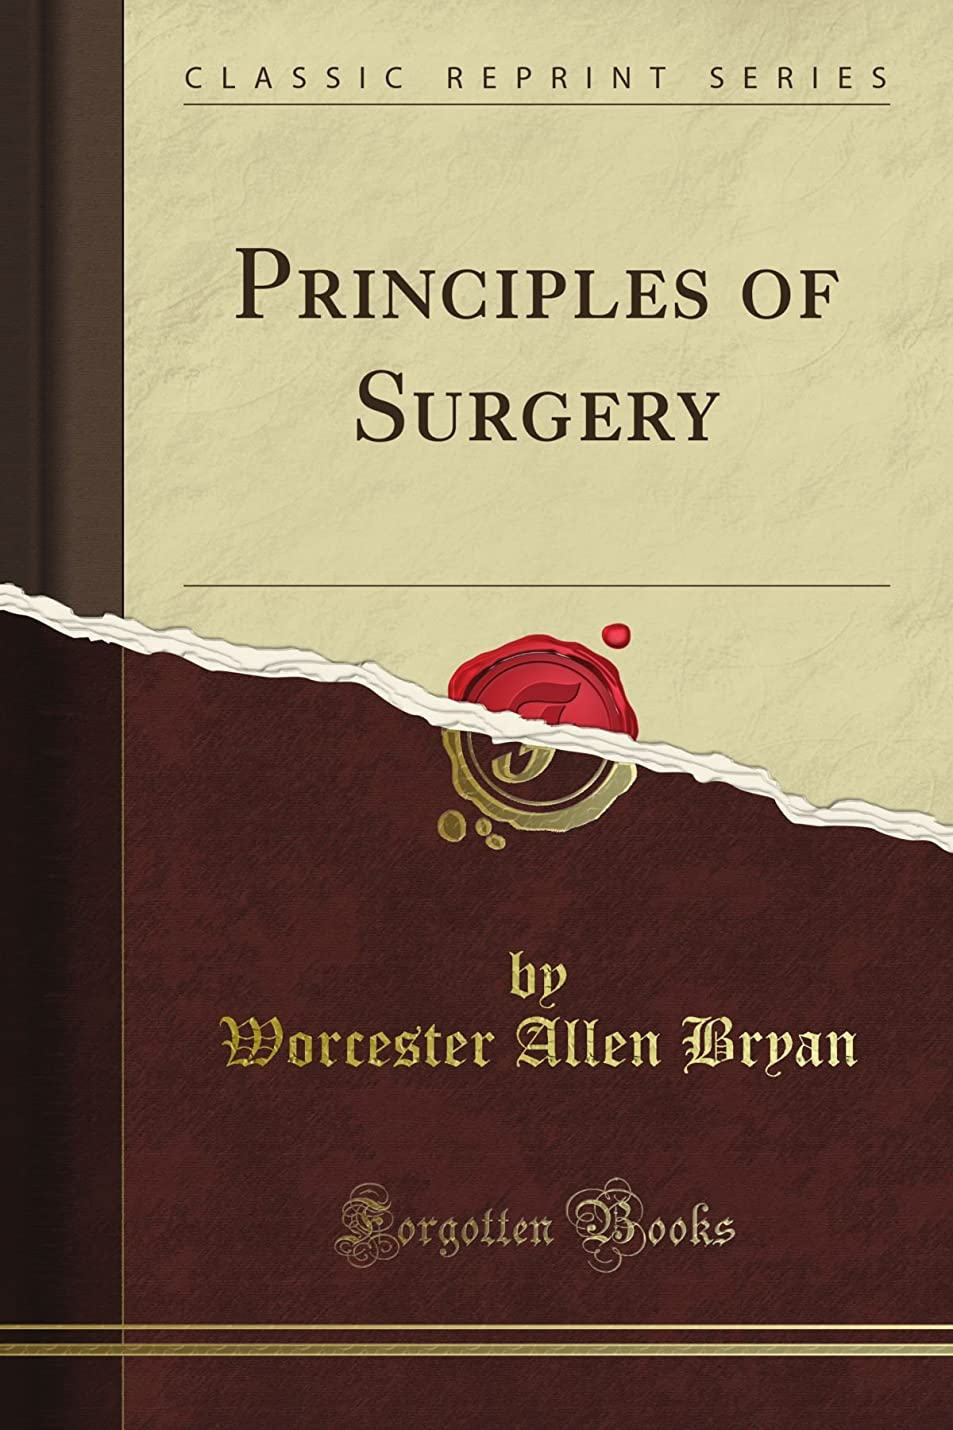 肯定的意欲軍艦Principles of Surgery (Classic Reprint)